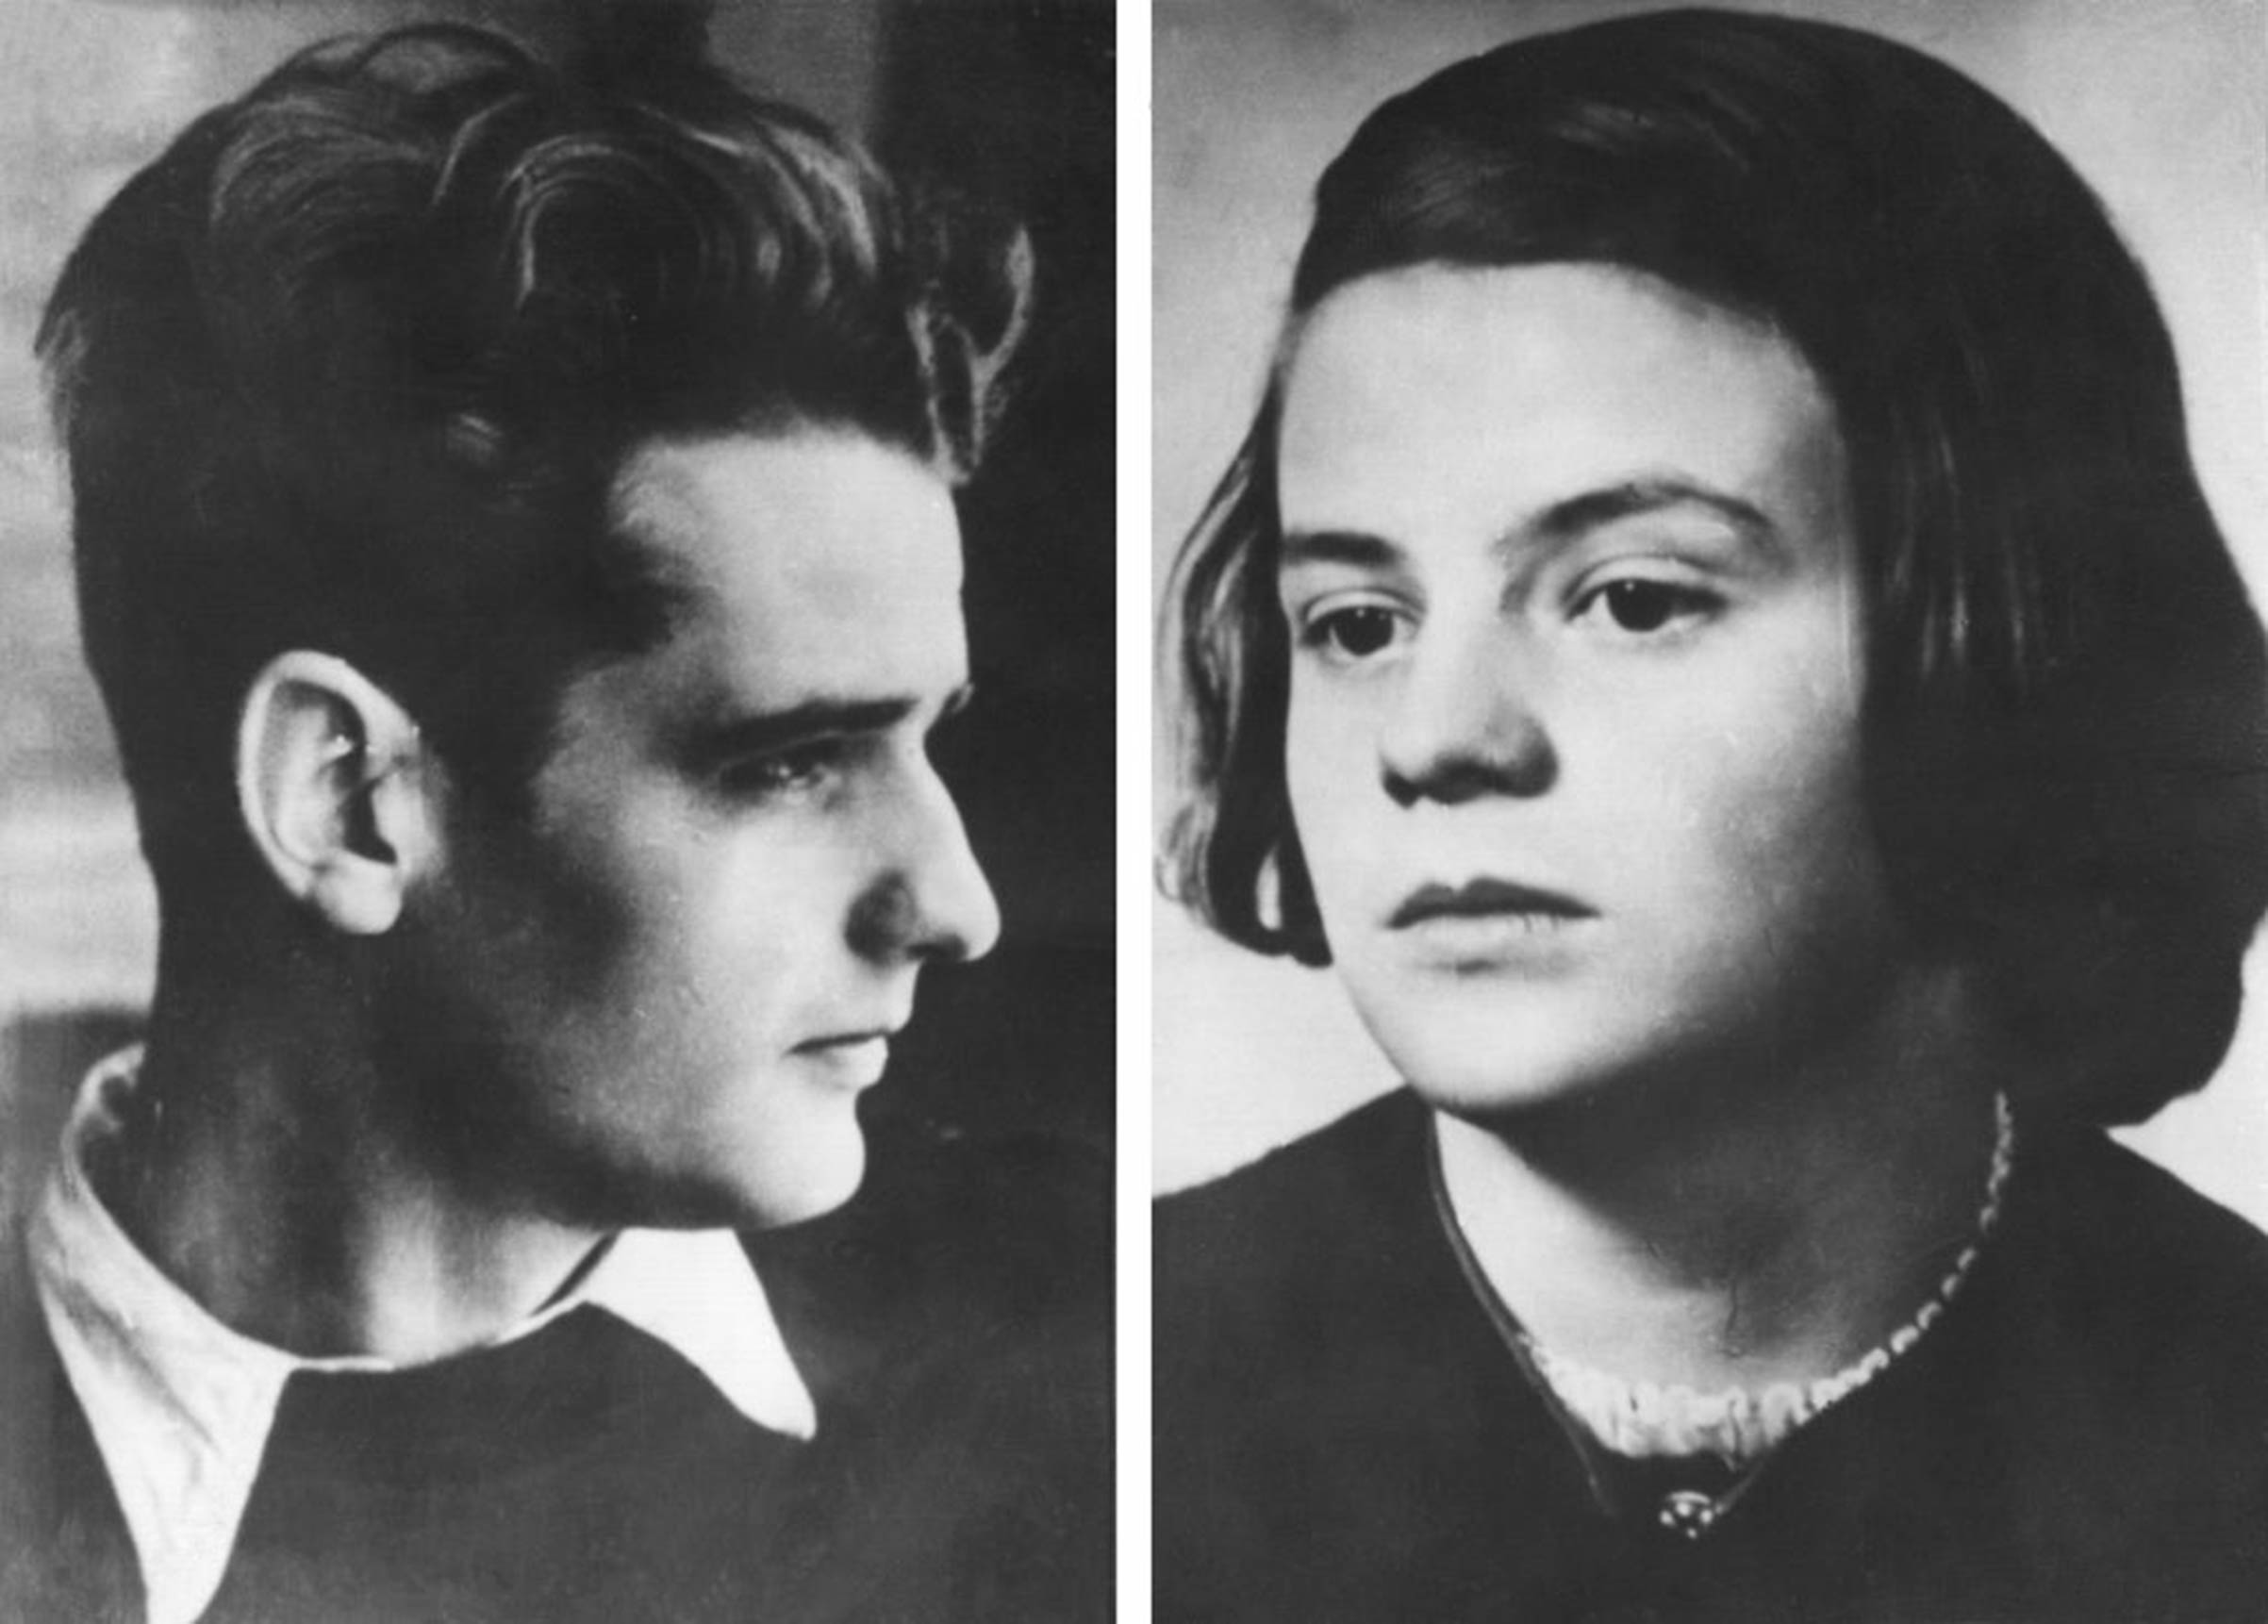 Hans and Sophie Scholl famously turned against their Hitler Youth roots by distributing anti-Nazi pamphlets.